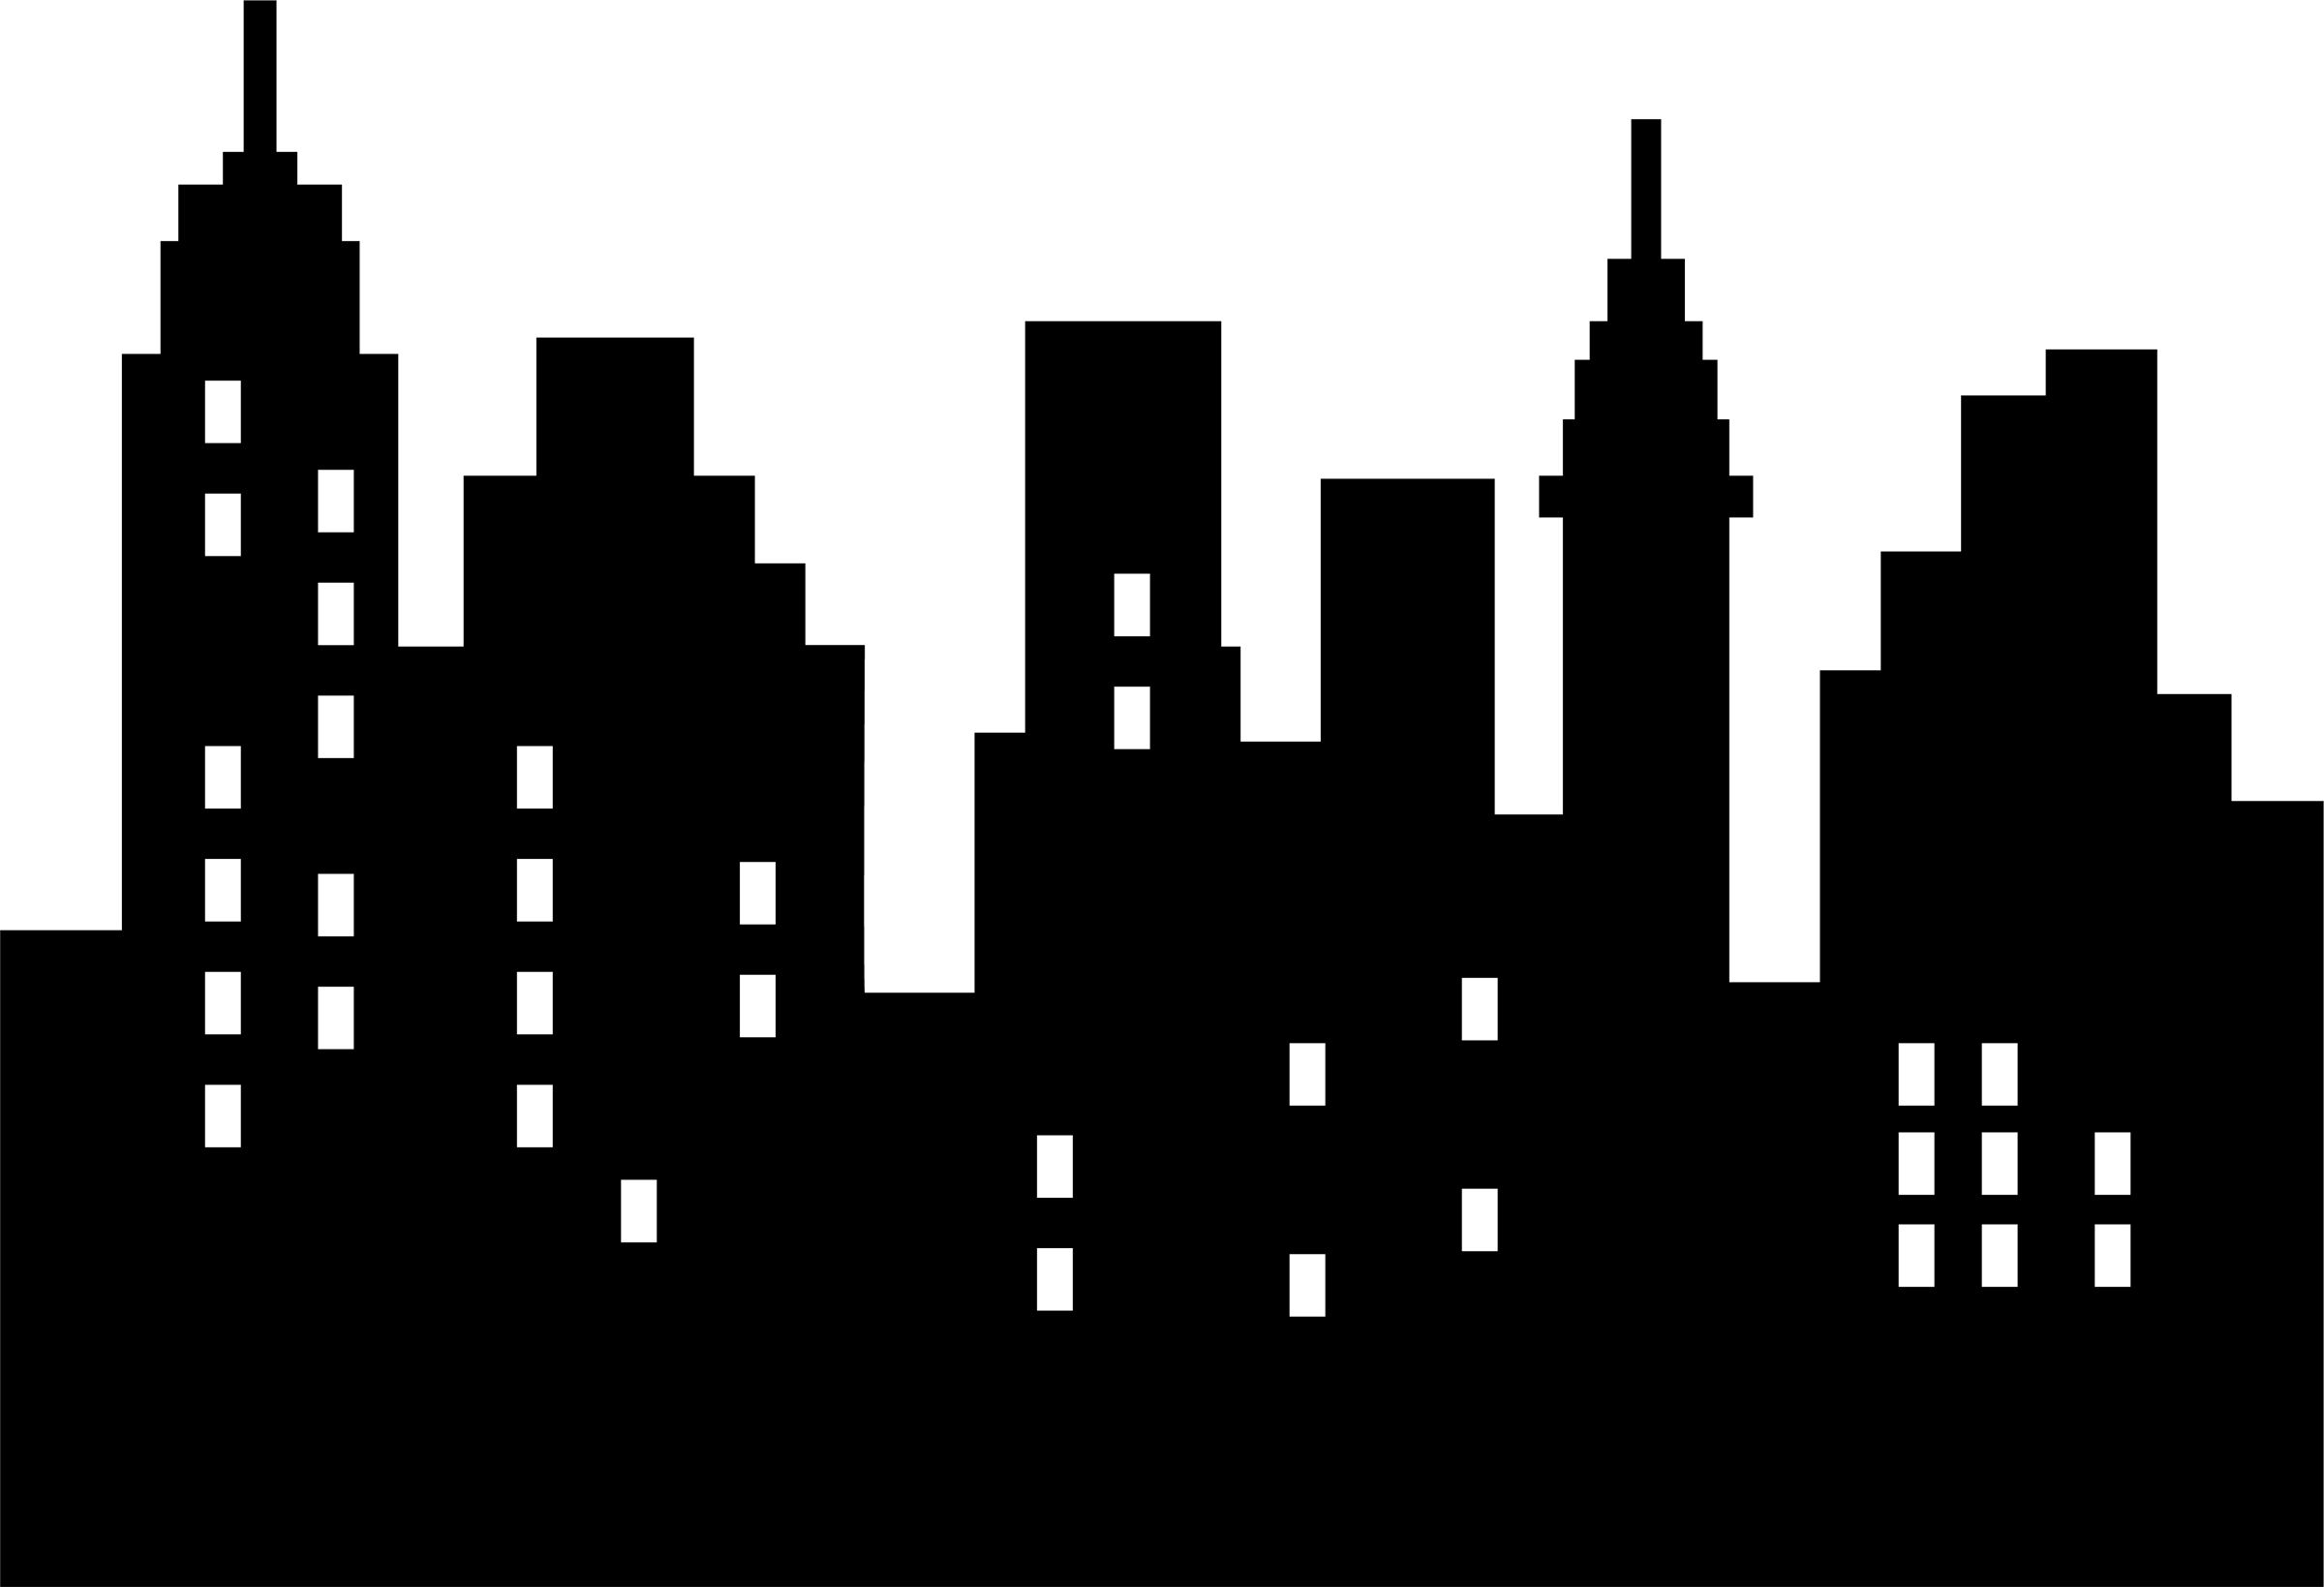 Spiderman building clipart clip art royalty free library Image result for batman building template | Emmett ... clip art royalty free library